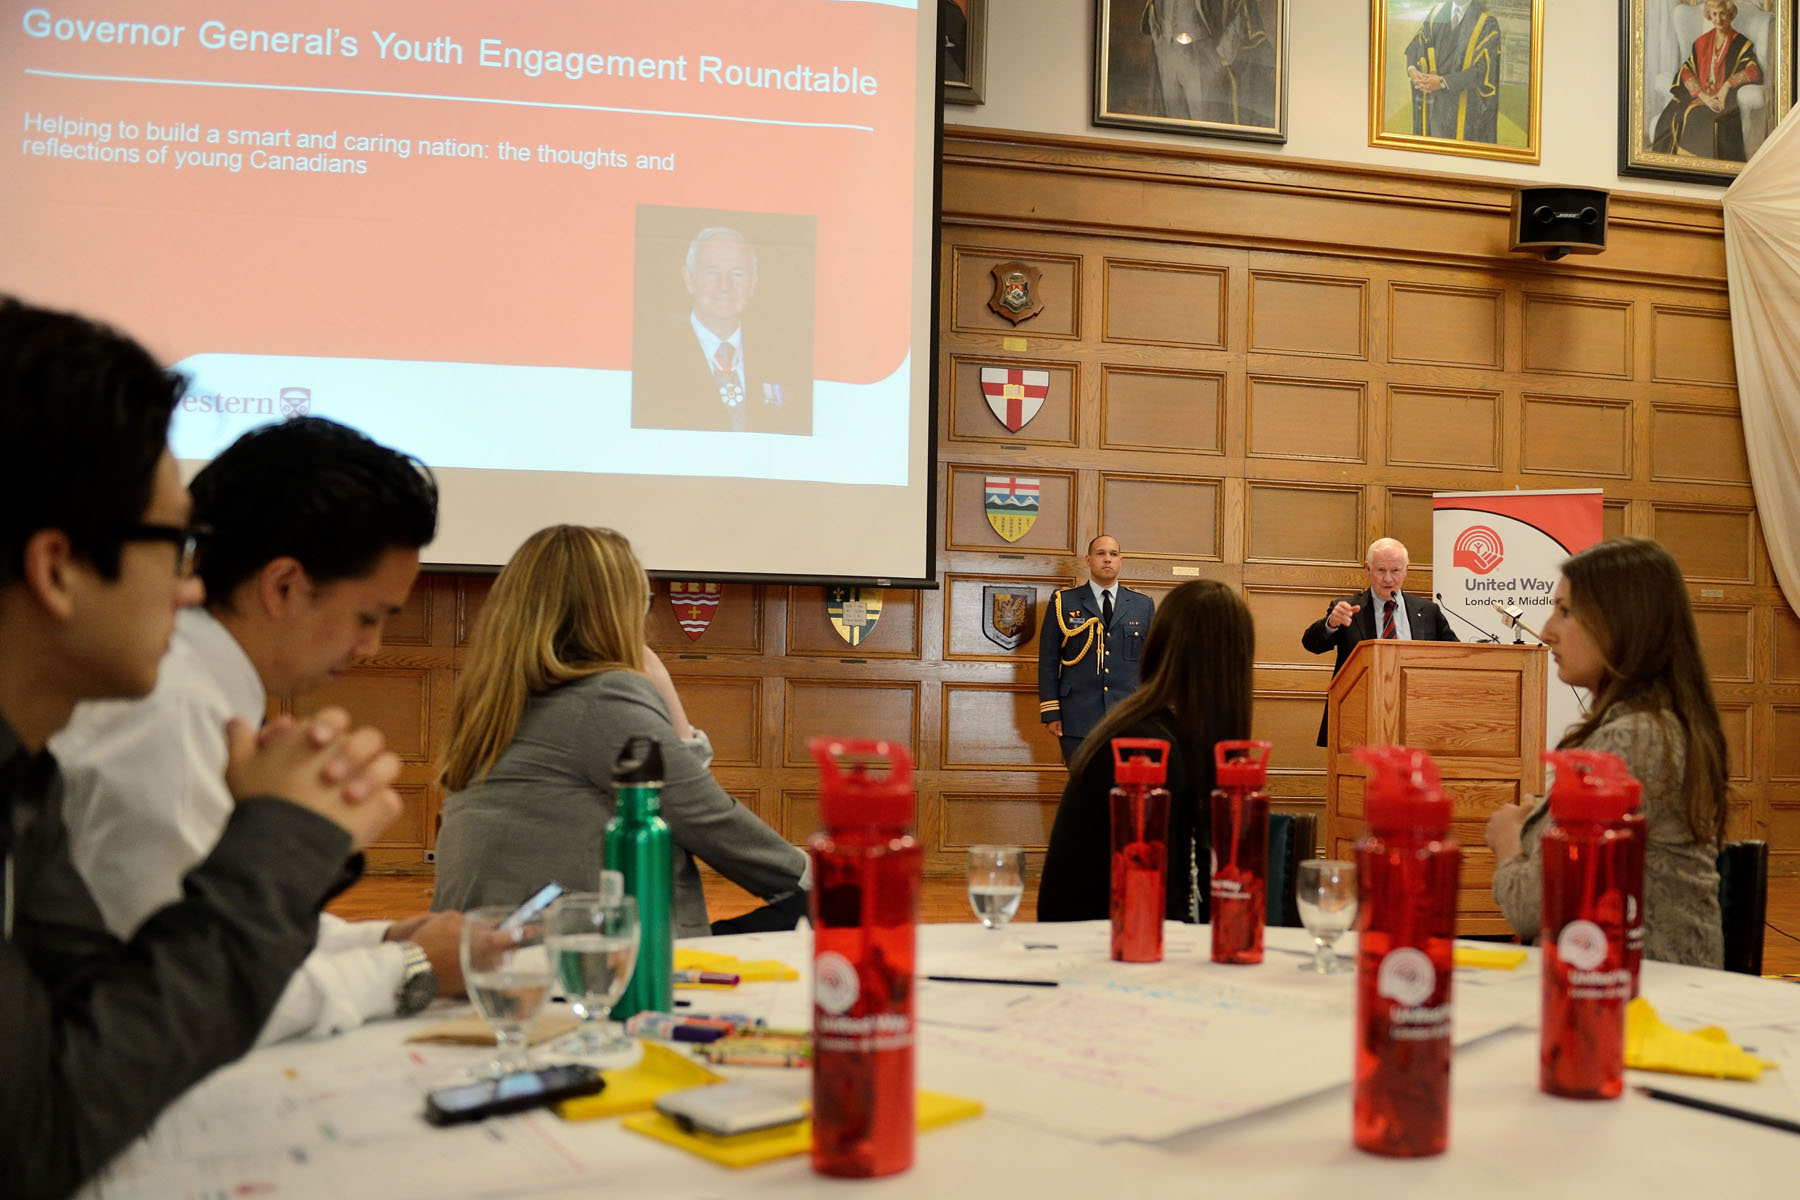 His Excellency addressed participants of a round table on youth 